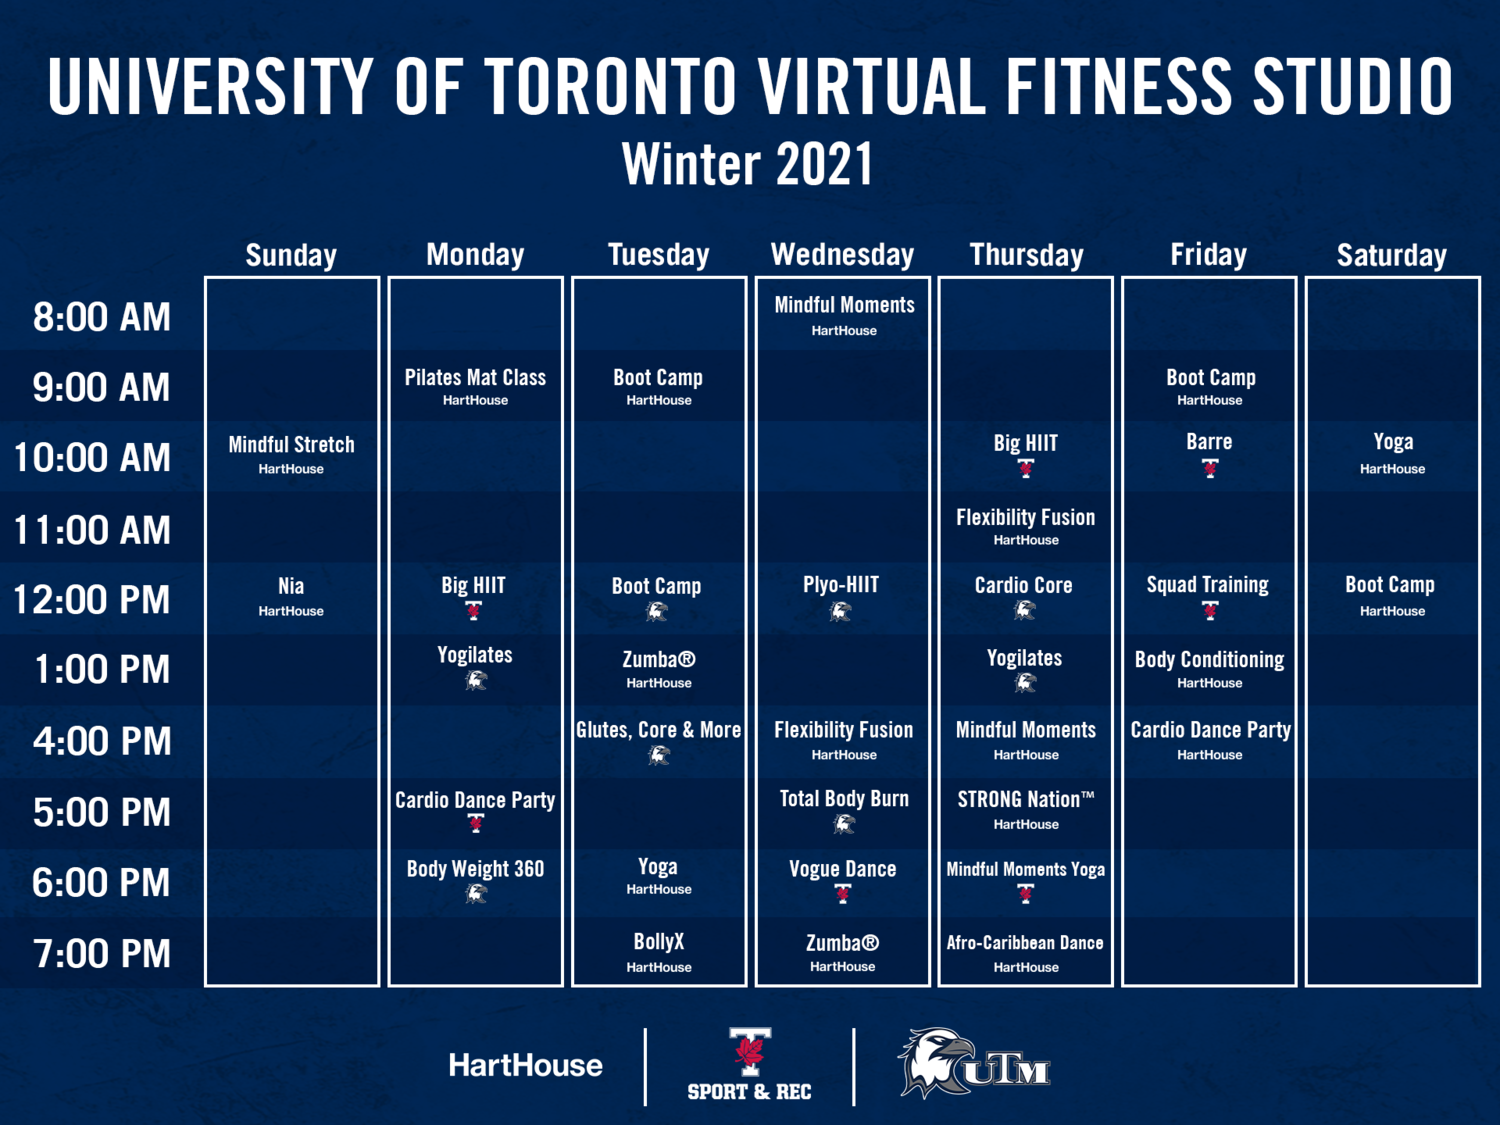 UofT Virtual Fitness Schedule